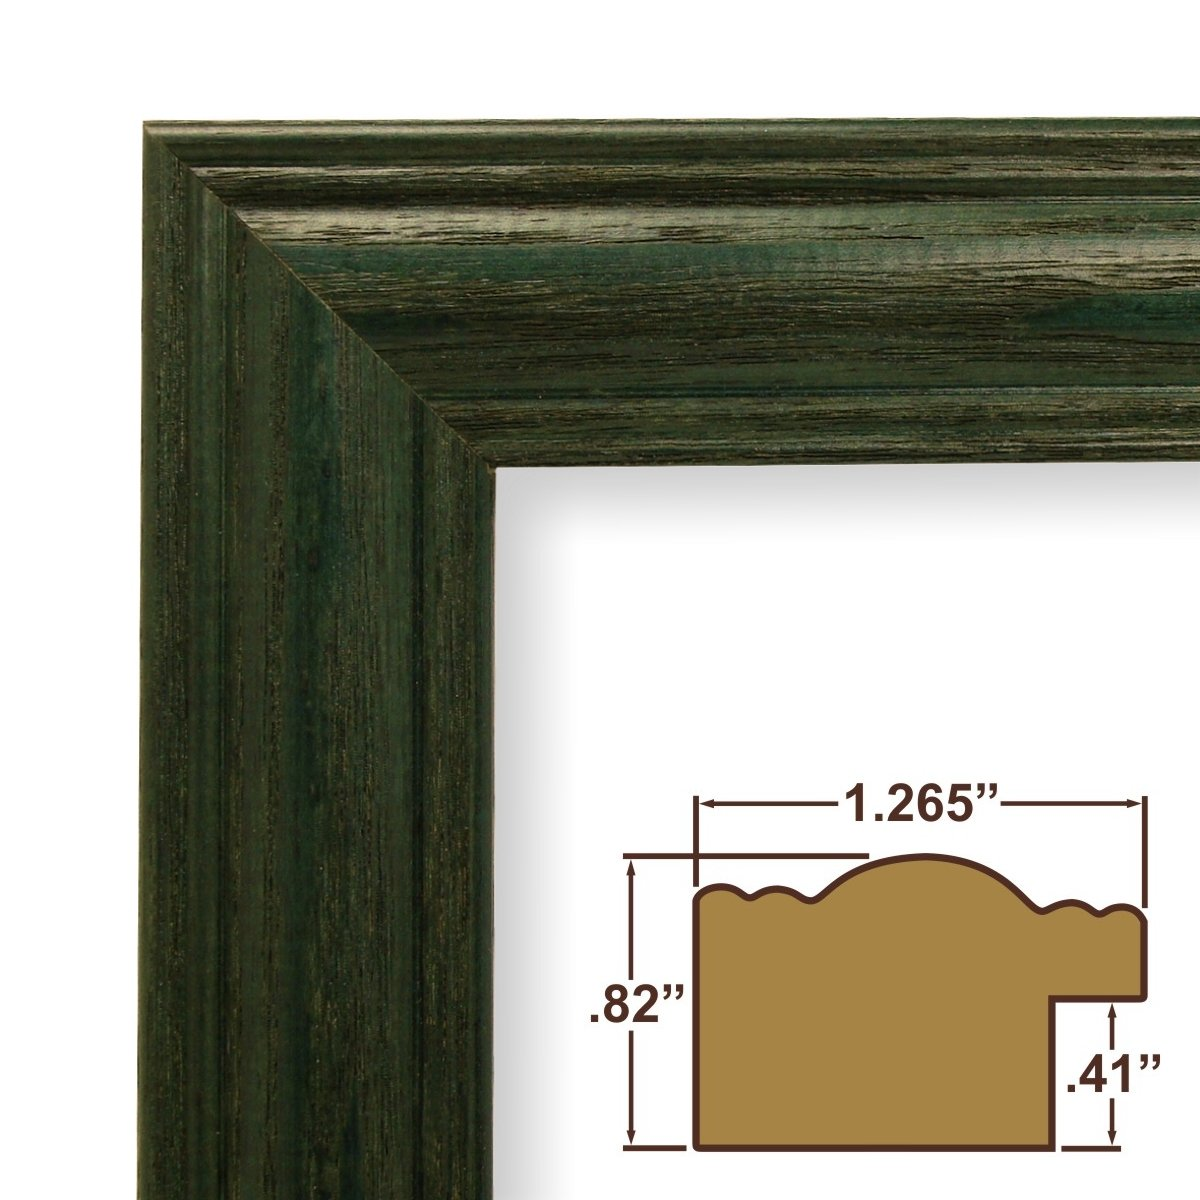 Amazon.com - 13x25 Picture / Poster Frame, Wood Grain Finish, 1.265 ...